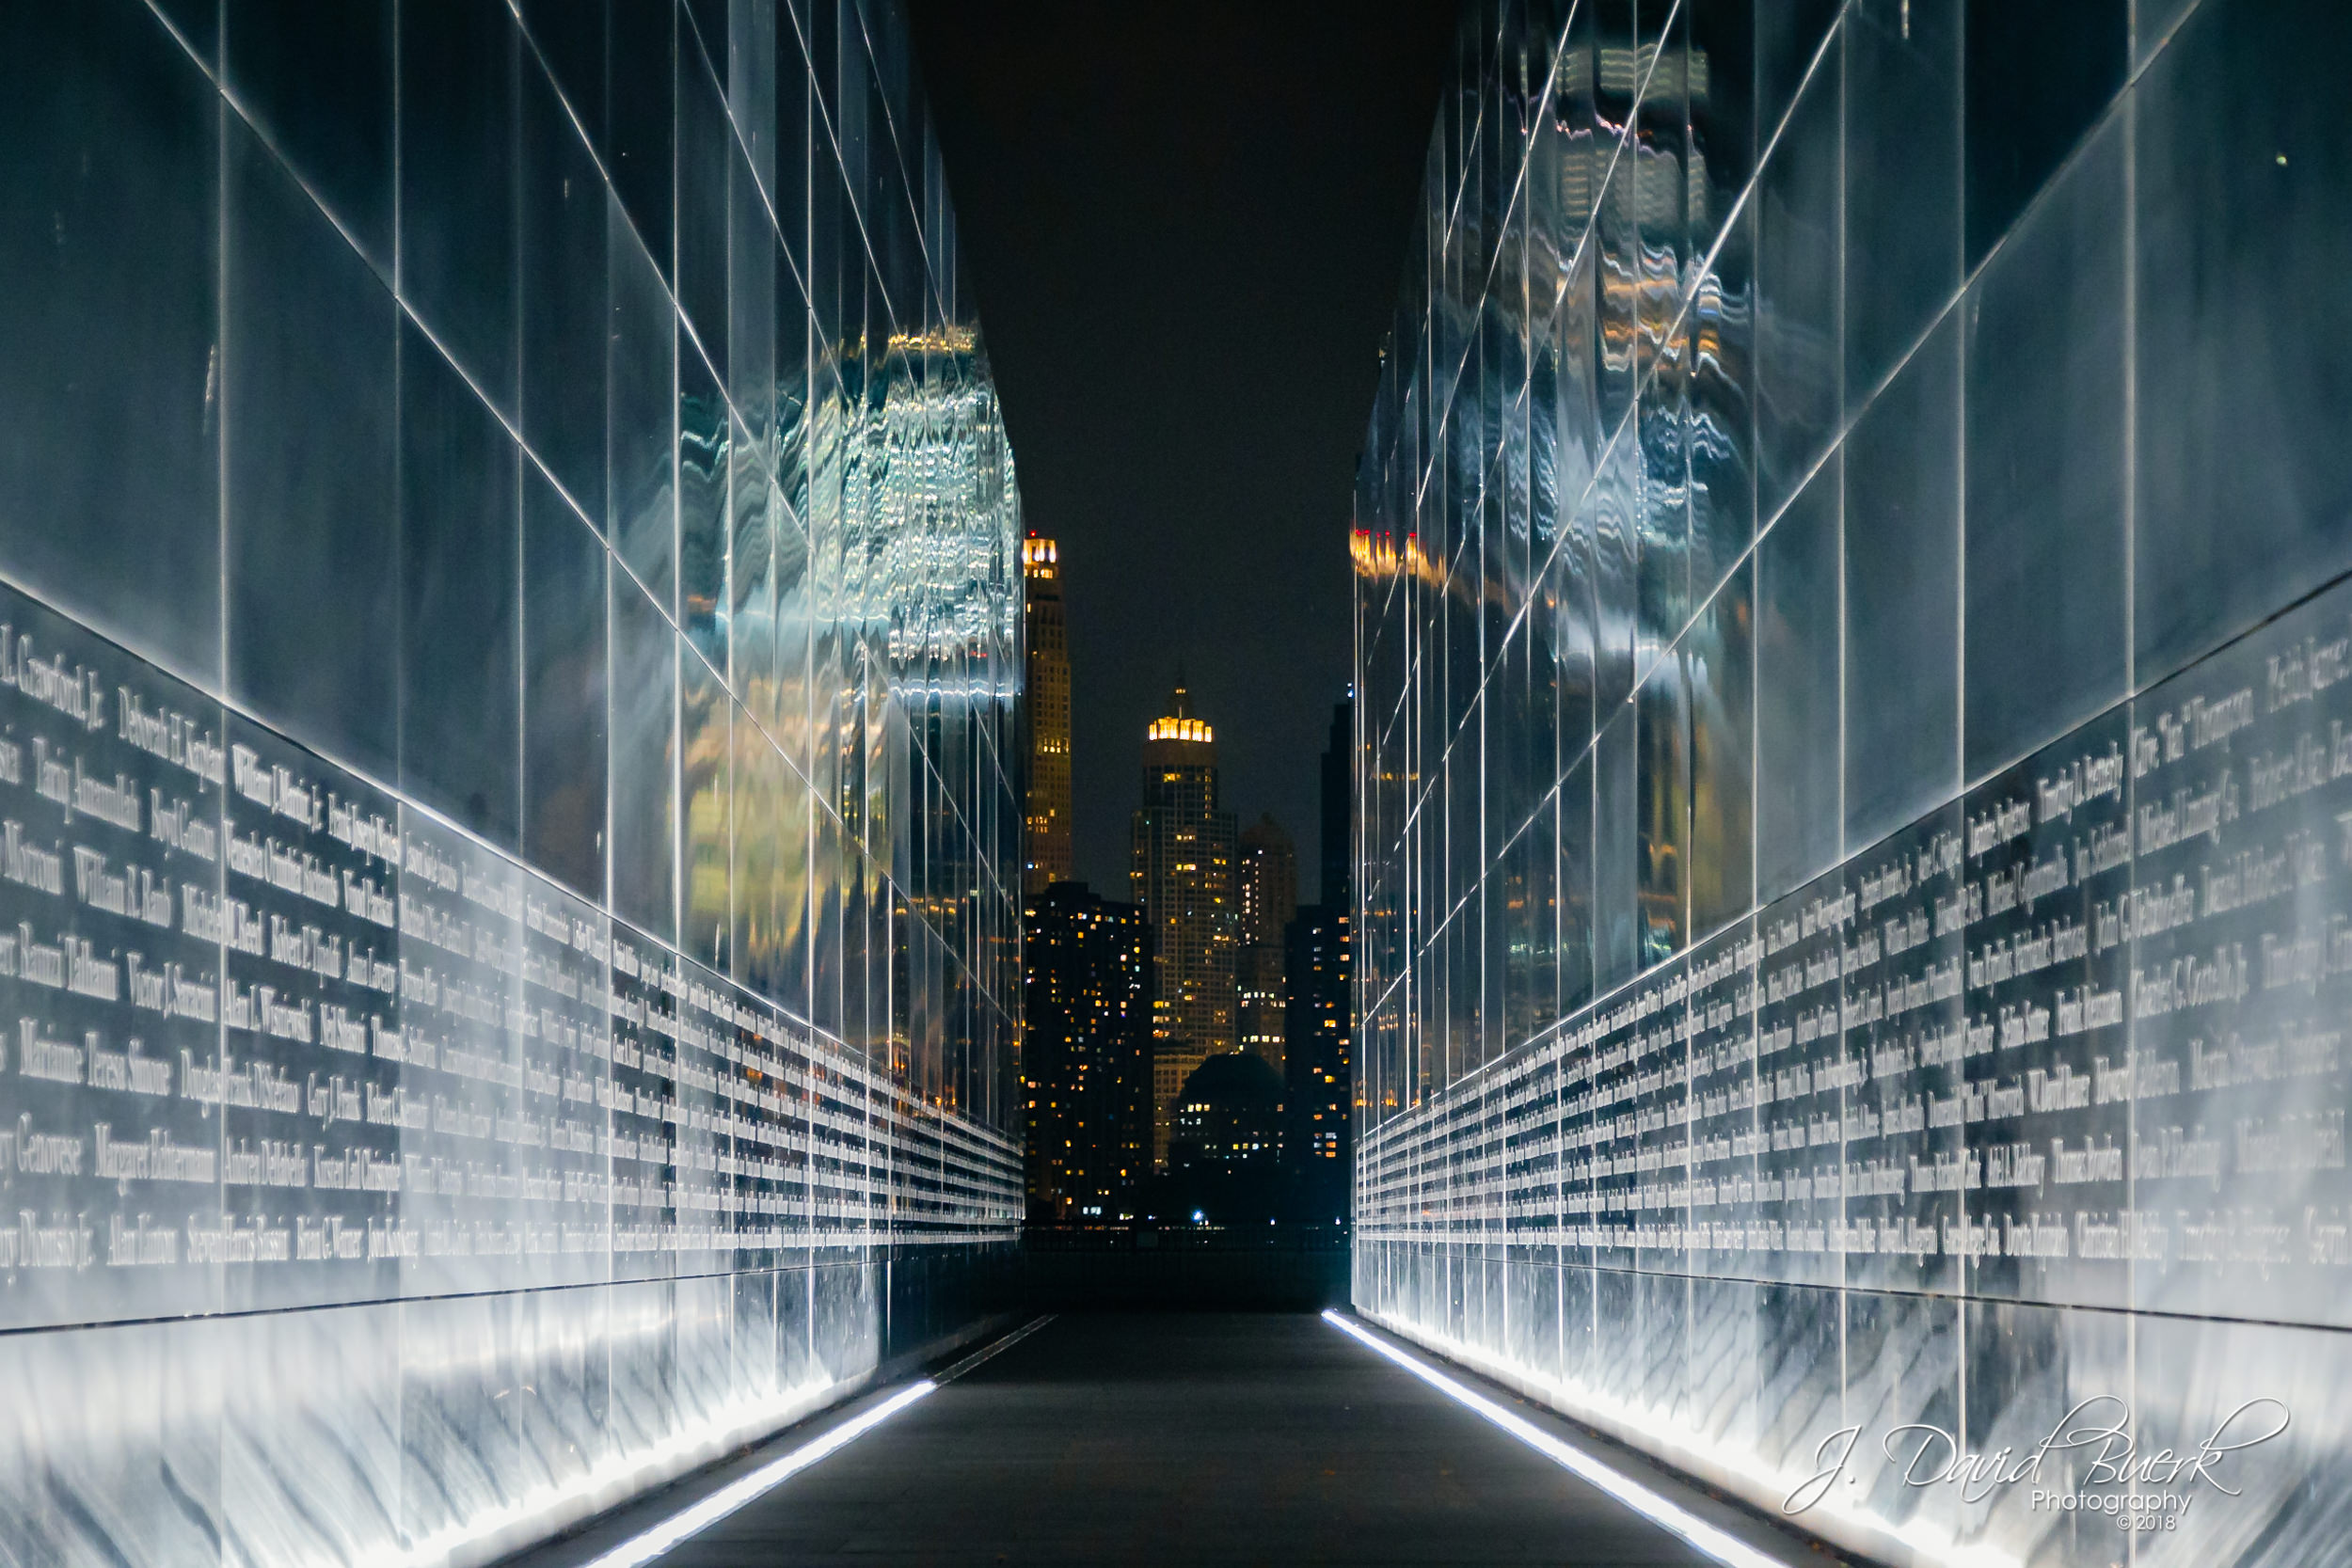 Nighttime view of the former location of New York City's World Trade Center Twin Towers through the Empty Sky Memorial in Jersey City, New Jersey.